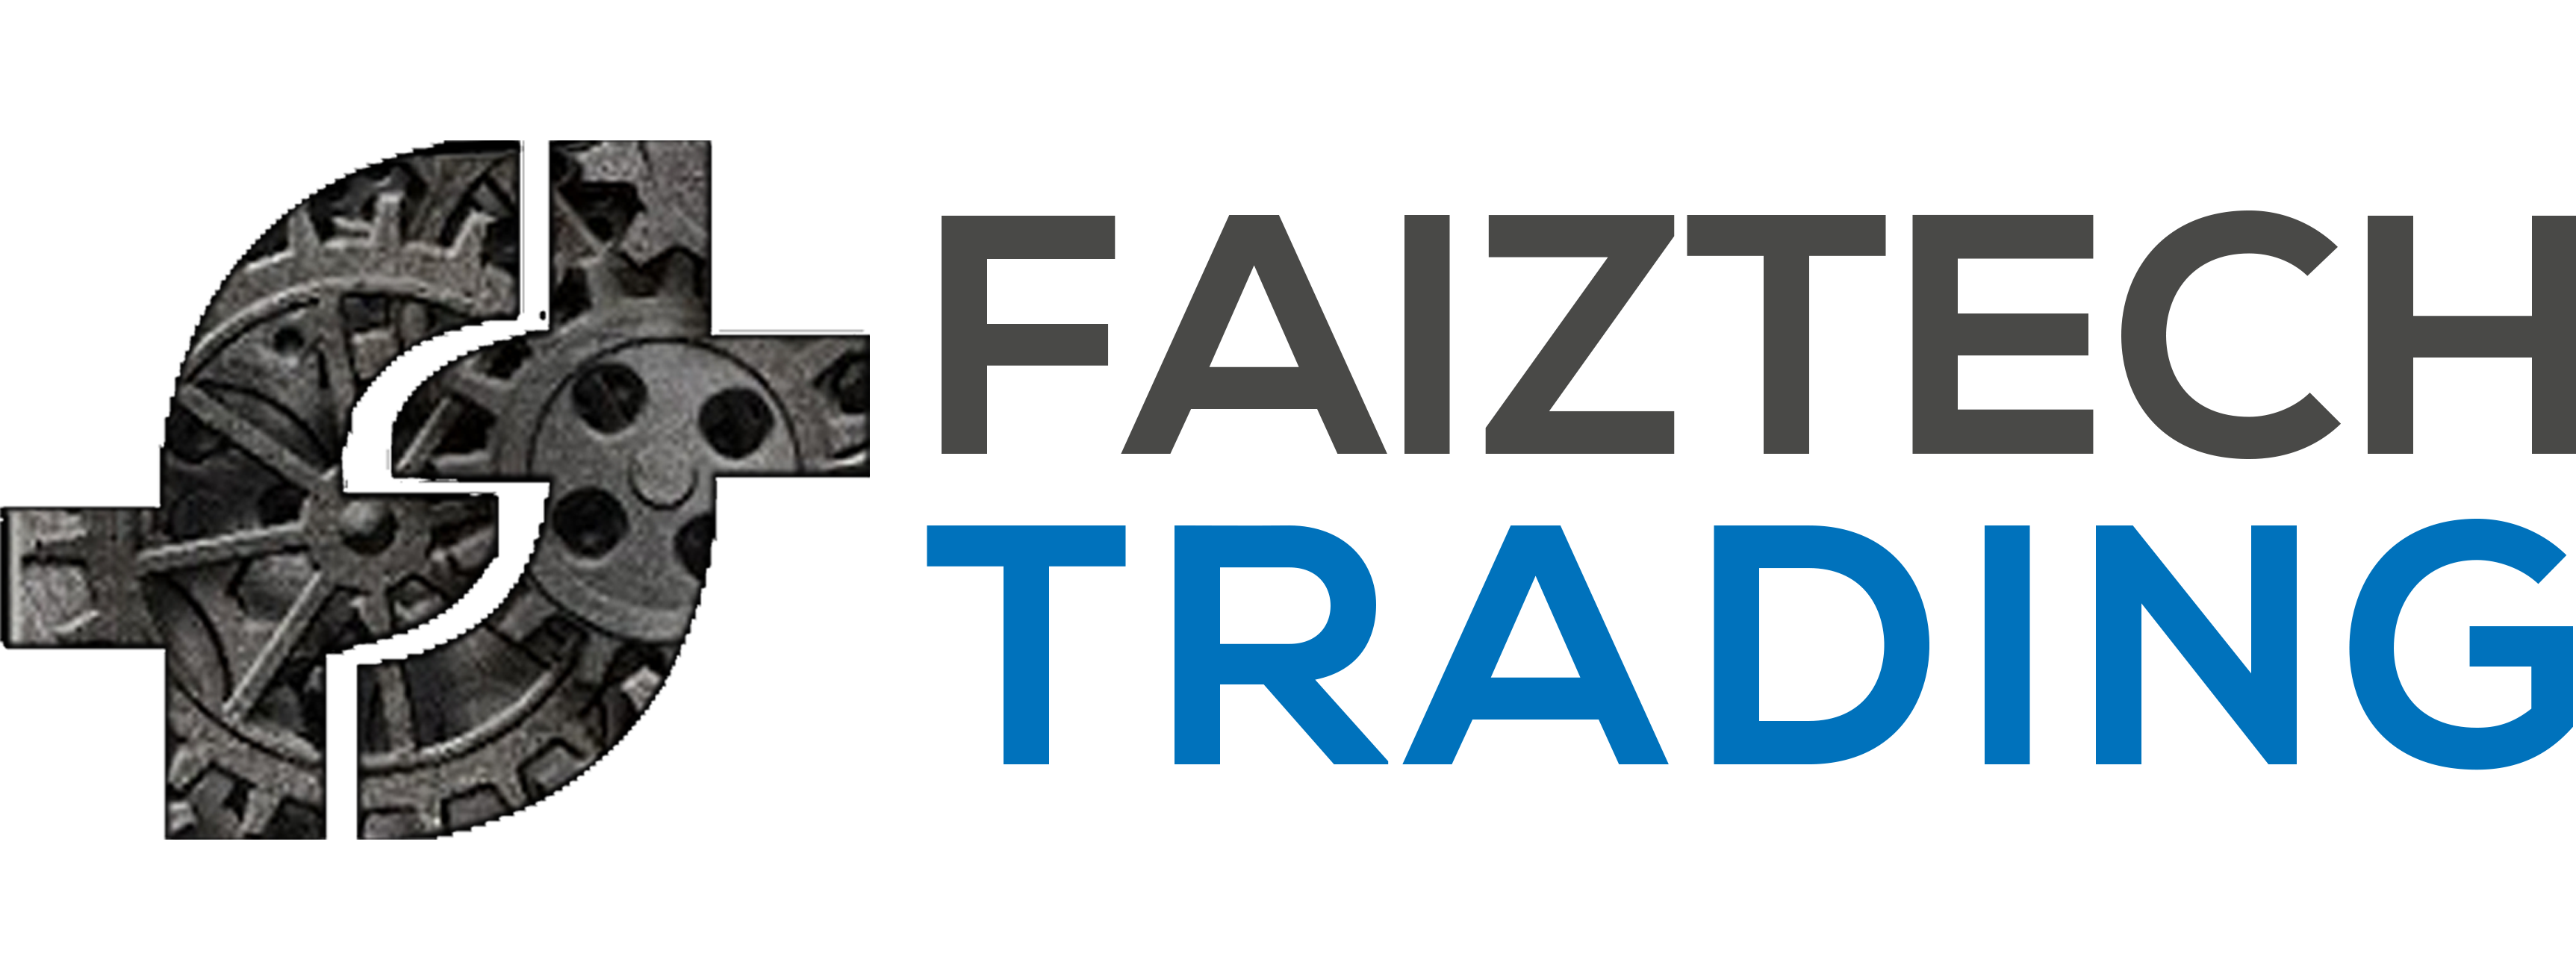 FAIZTECH | Conveyor Belt Supplier & Conveyor Chain Manufacturer